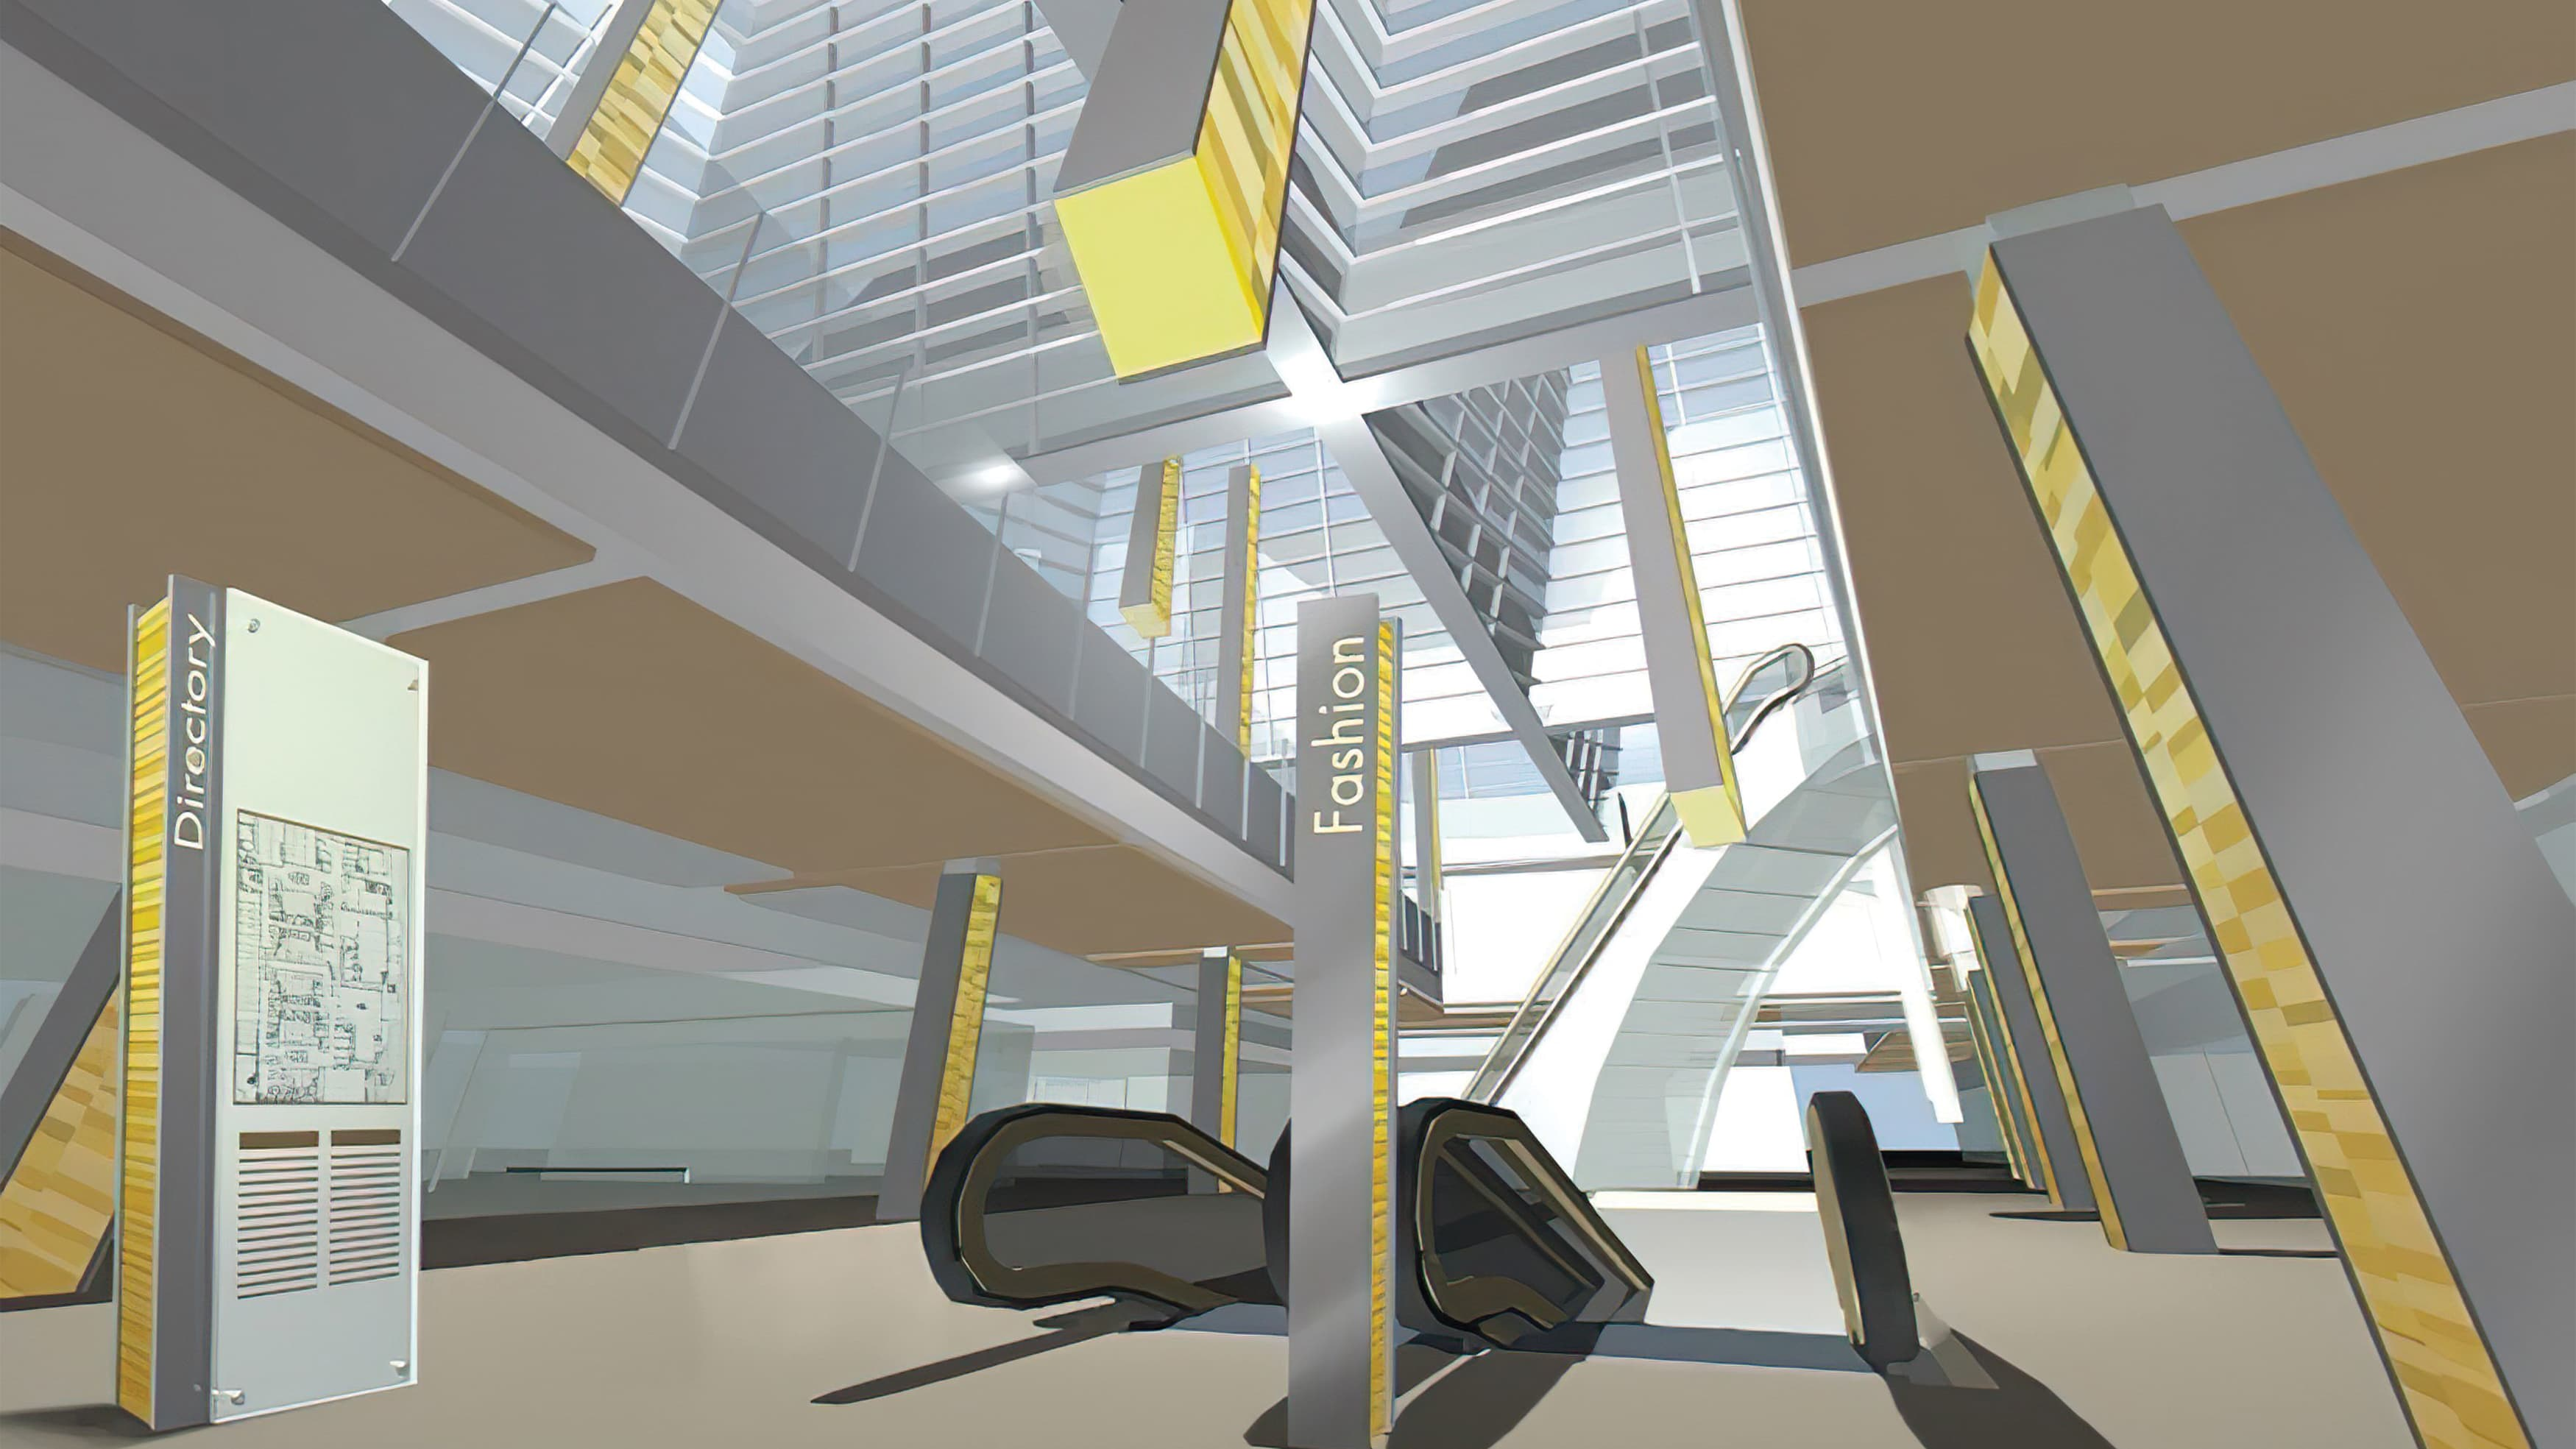 Interior architectural rendering with standing pedestrian directory featuring site map